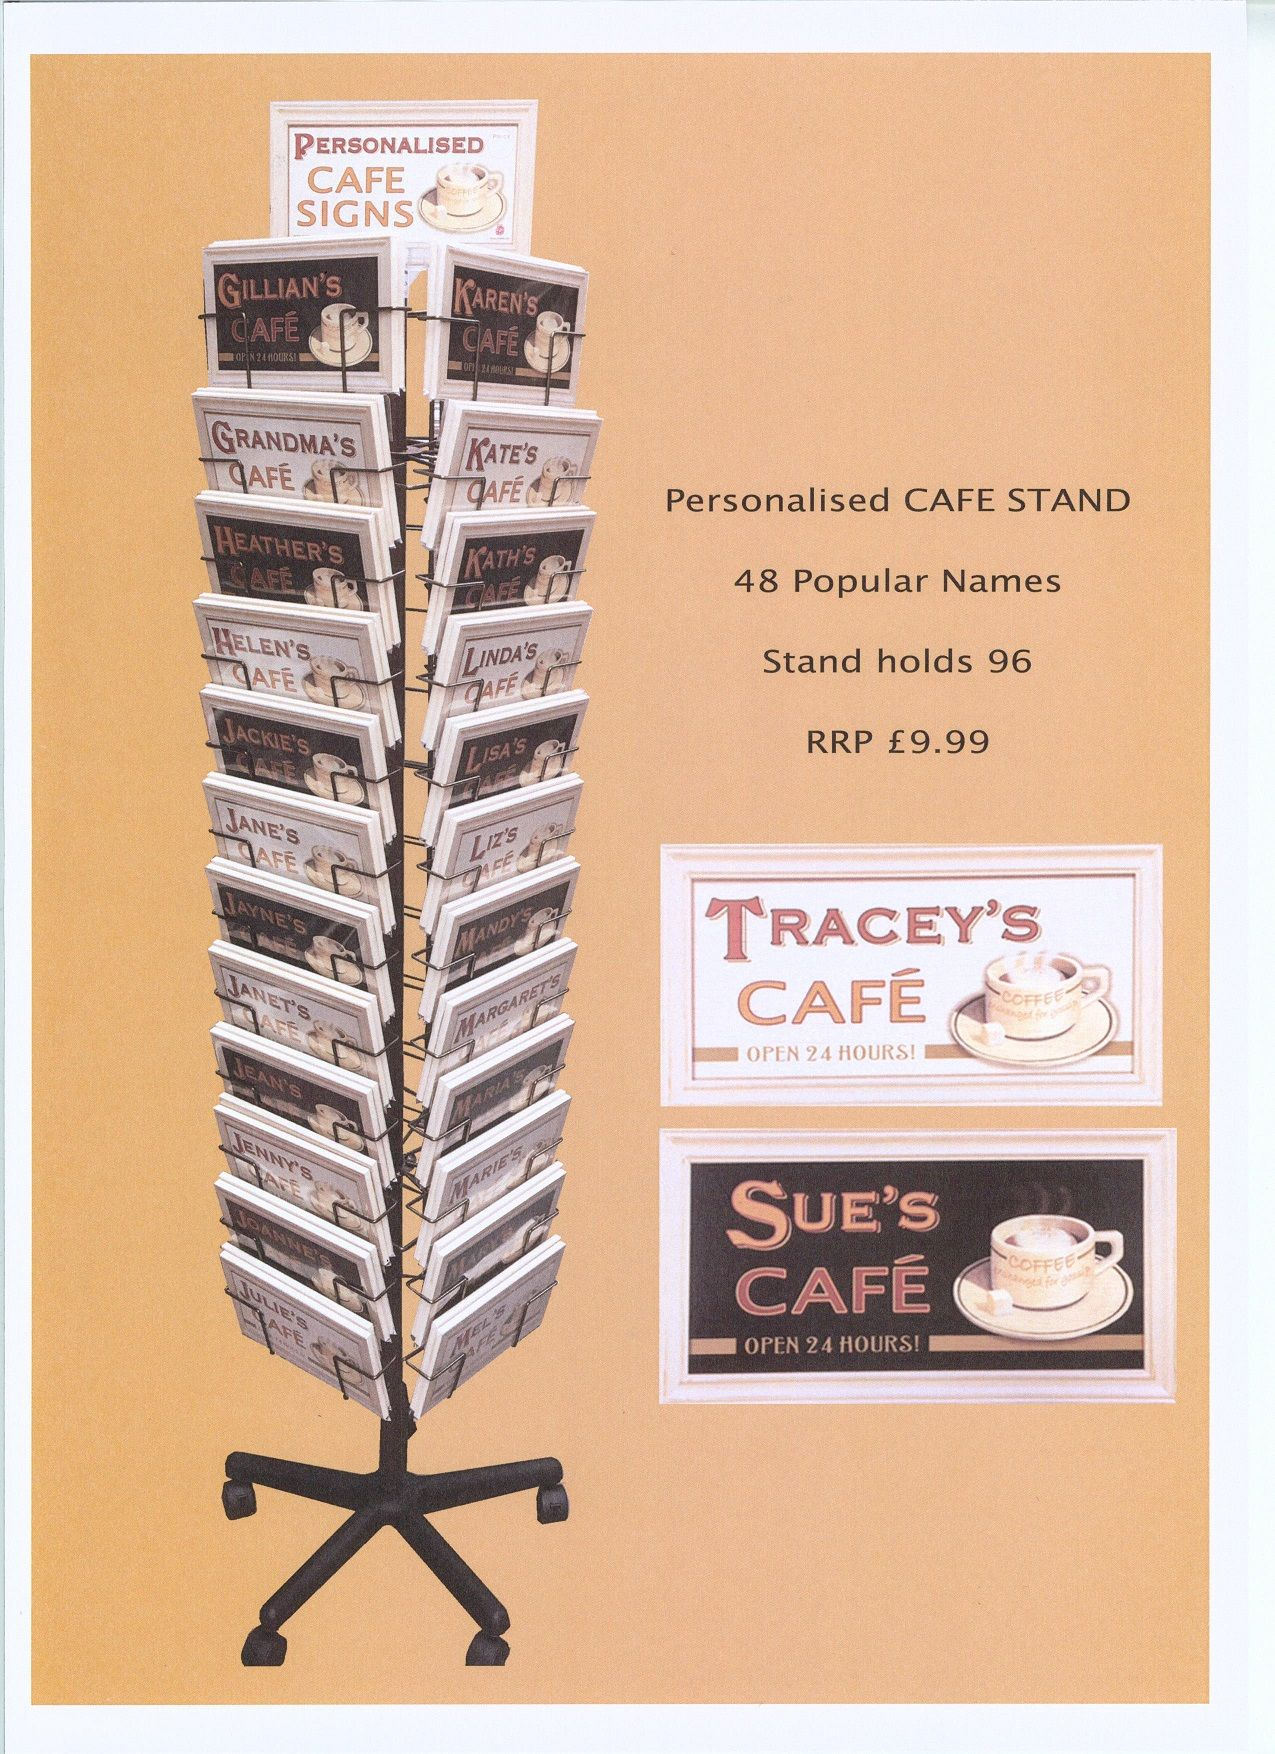 Personalised Cafe Signs